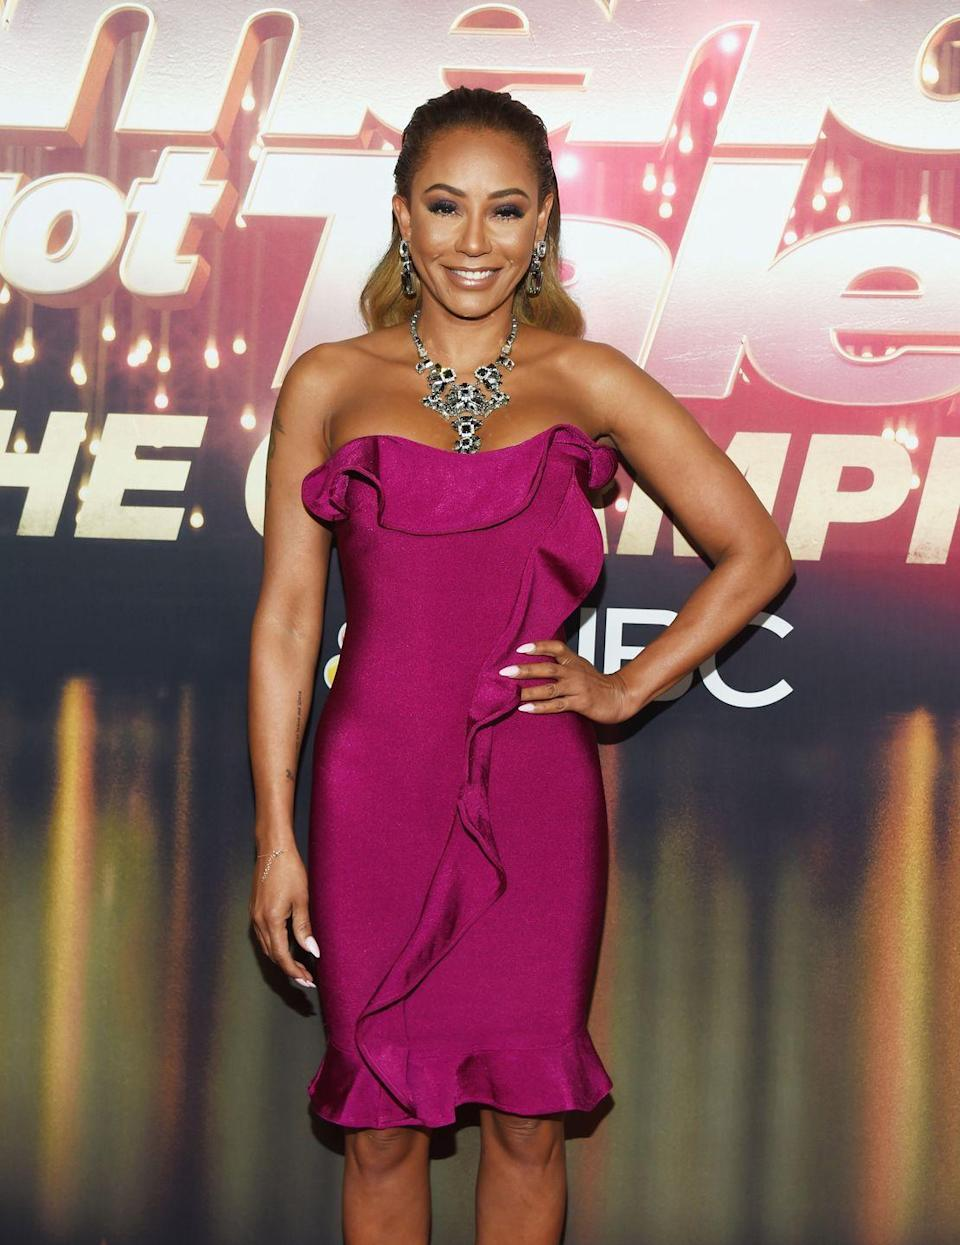 "<p>Mel B is a <em>wannabe </em>yoga lover, but she just doesn't care for it. What she does like is a quick, hard ab workout that involves varying crunches and planks. Her real key to success: embracing workouts you enjoy. ""If you hate what you're doing, you're never going to feel motivated, so do what works for you and keep switching it up so it never gets boring,"" she told <em><a href=""https://www.womenshealthmag.com/fitness/a27165007/mel-b-leopard-bikini-instagram-photo/"" rel=""nofollow noopener"" target=""_blank"" data-ylk=""slk:Women's Health Australia"" class=""link rapid-noclick-resp"">Women's Health Australia</a></em>.</p>"